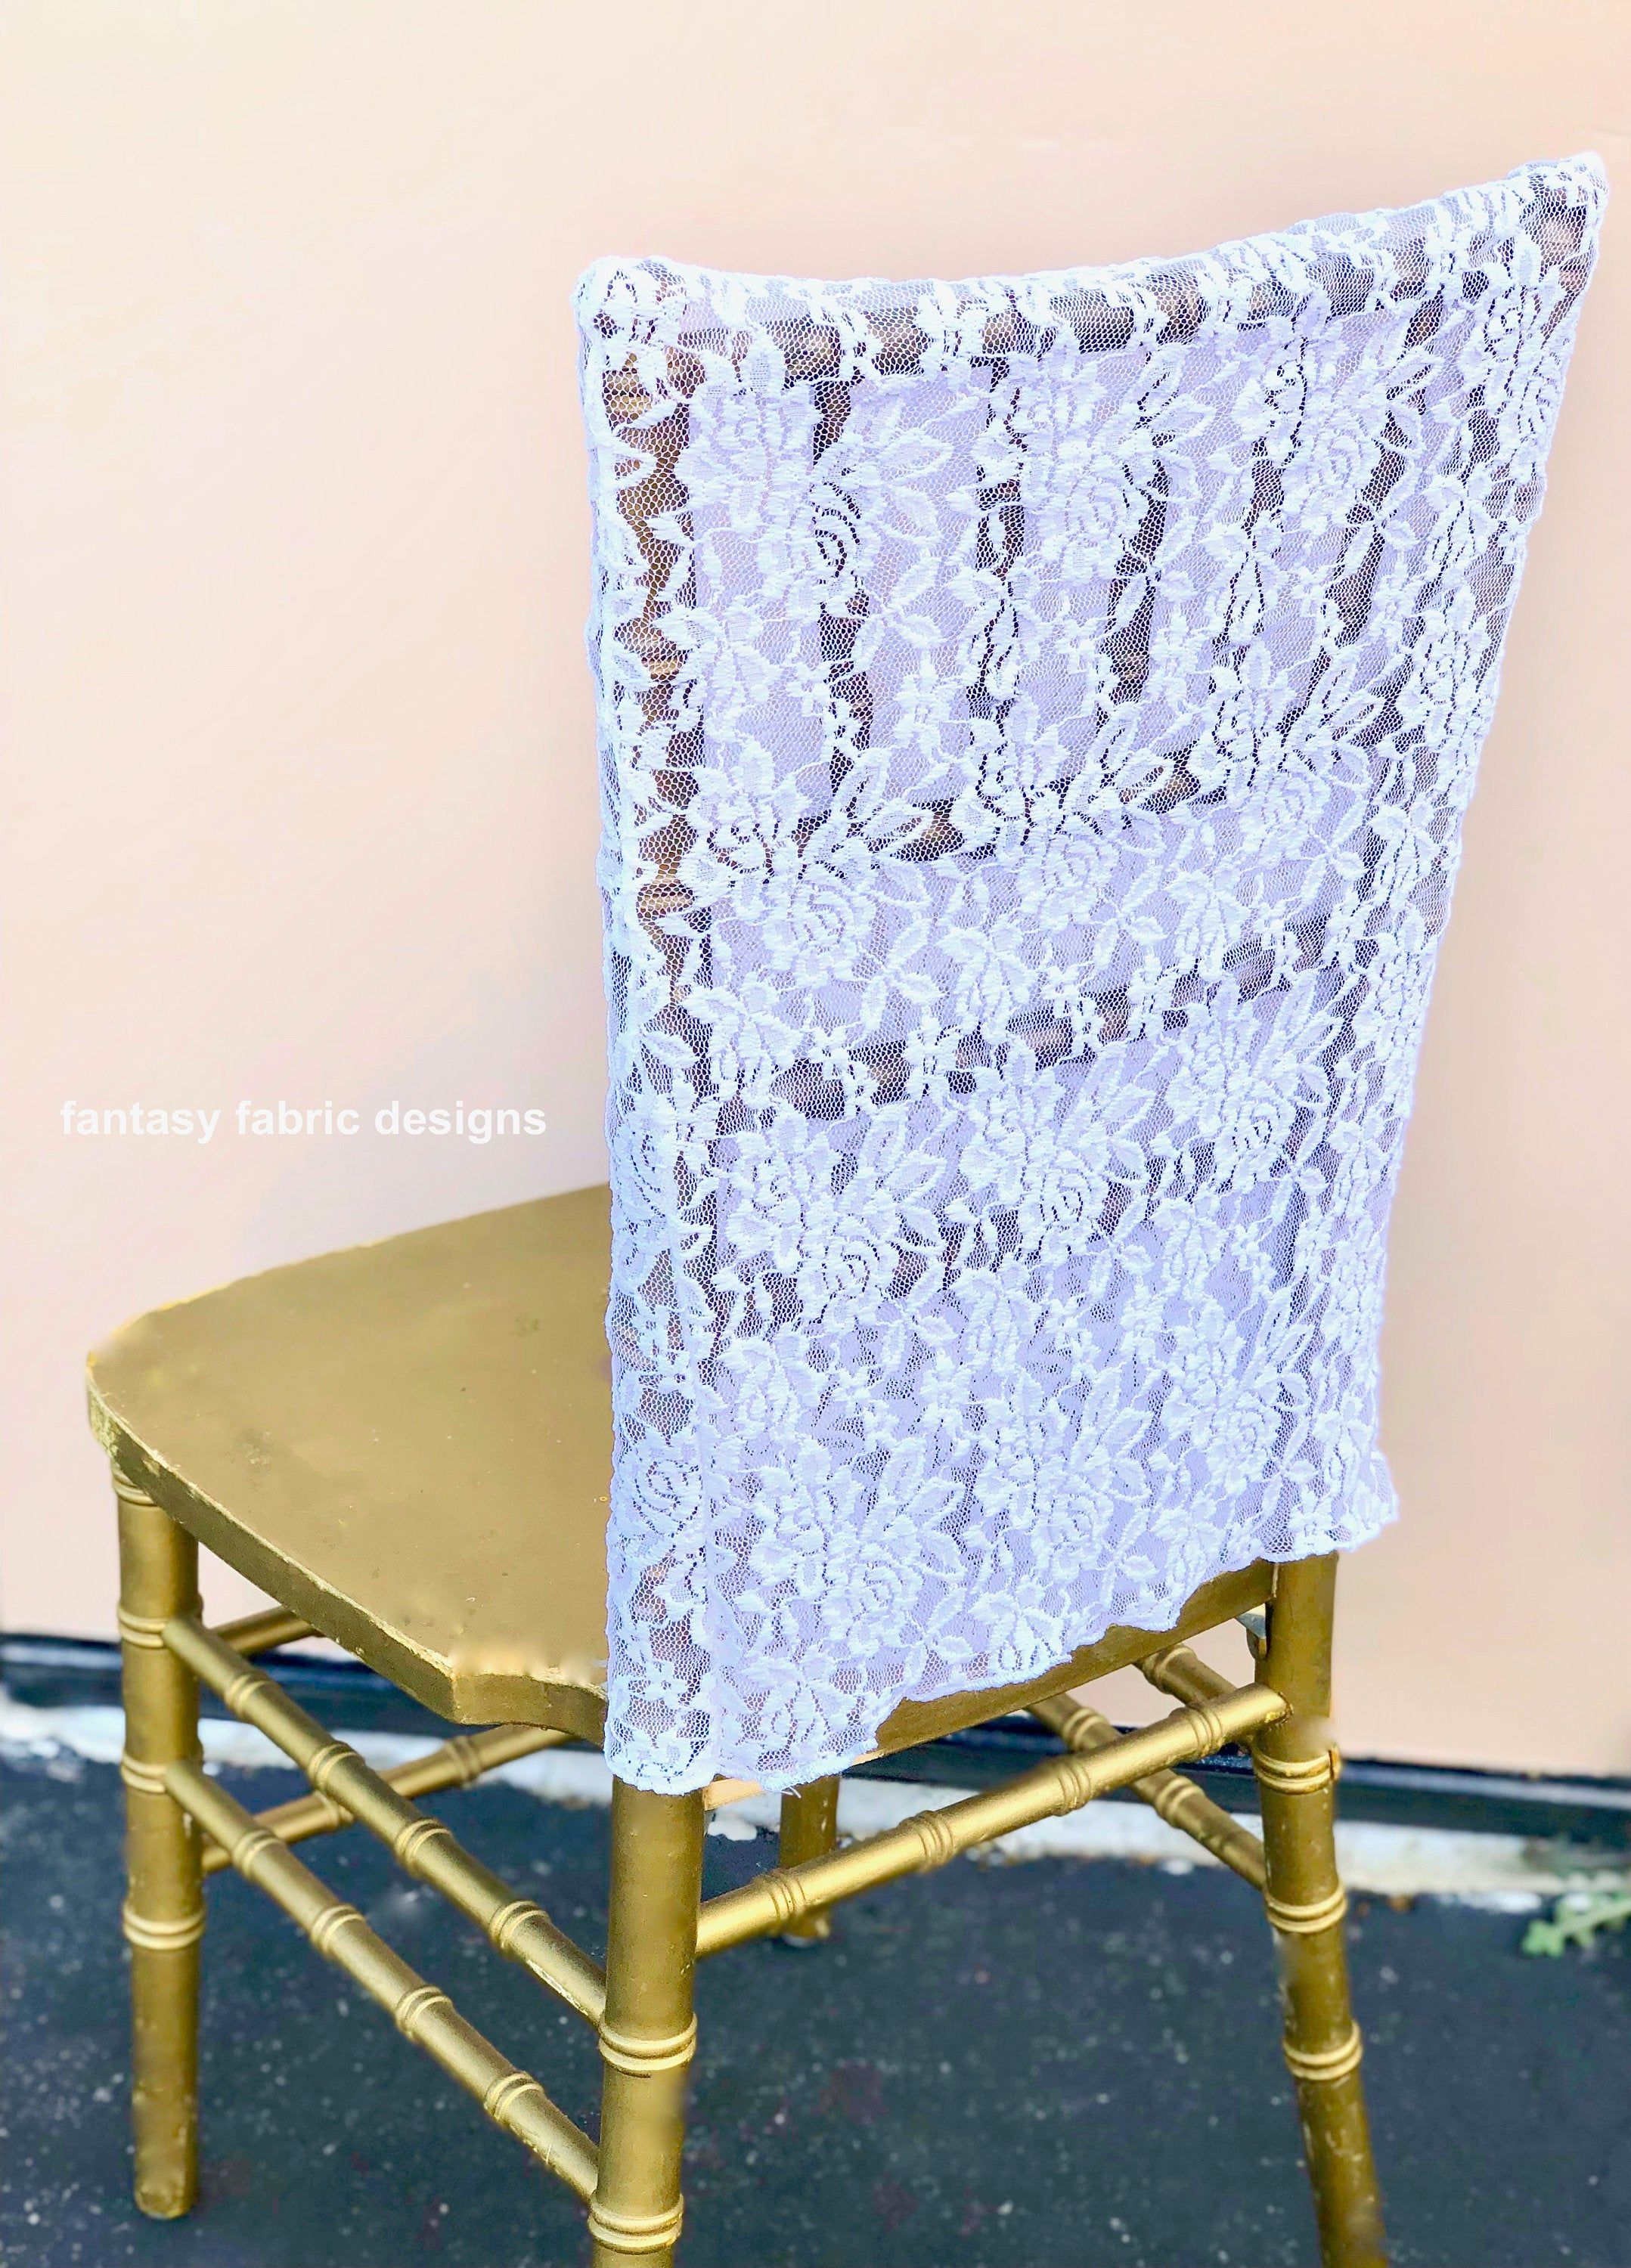 Stupendous Lace Chair Cover Wedding Decor Wedding Chair Covers Unemploymentrelief Wooden Chair Designs For Living Room Unemploymentrelieforg